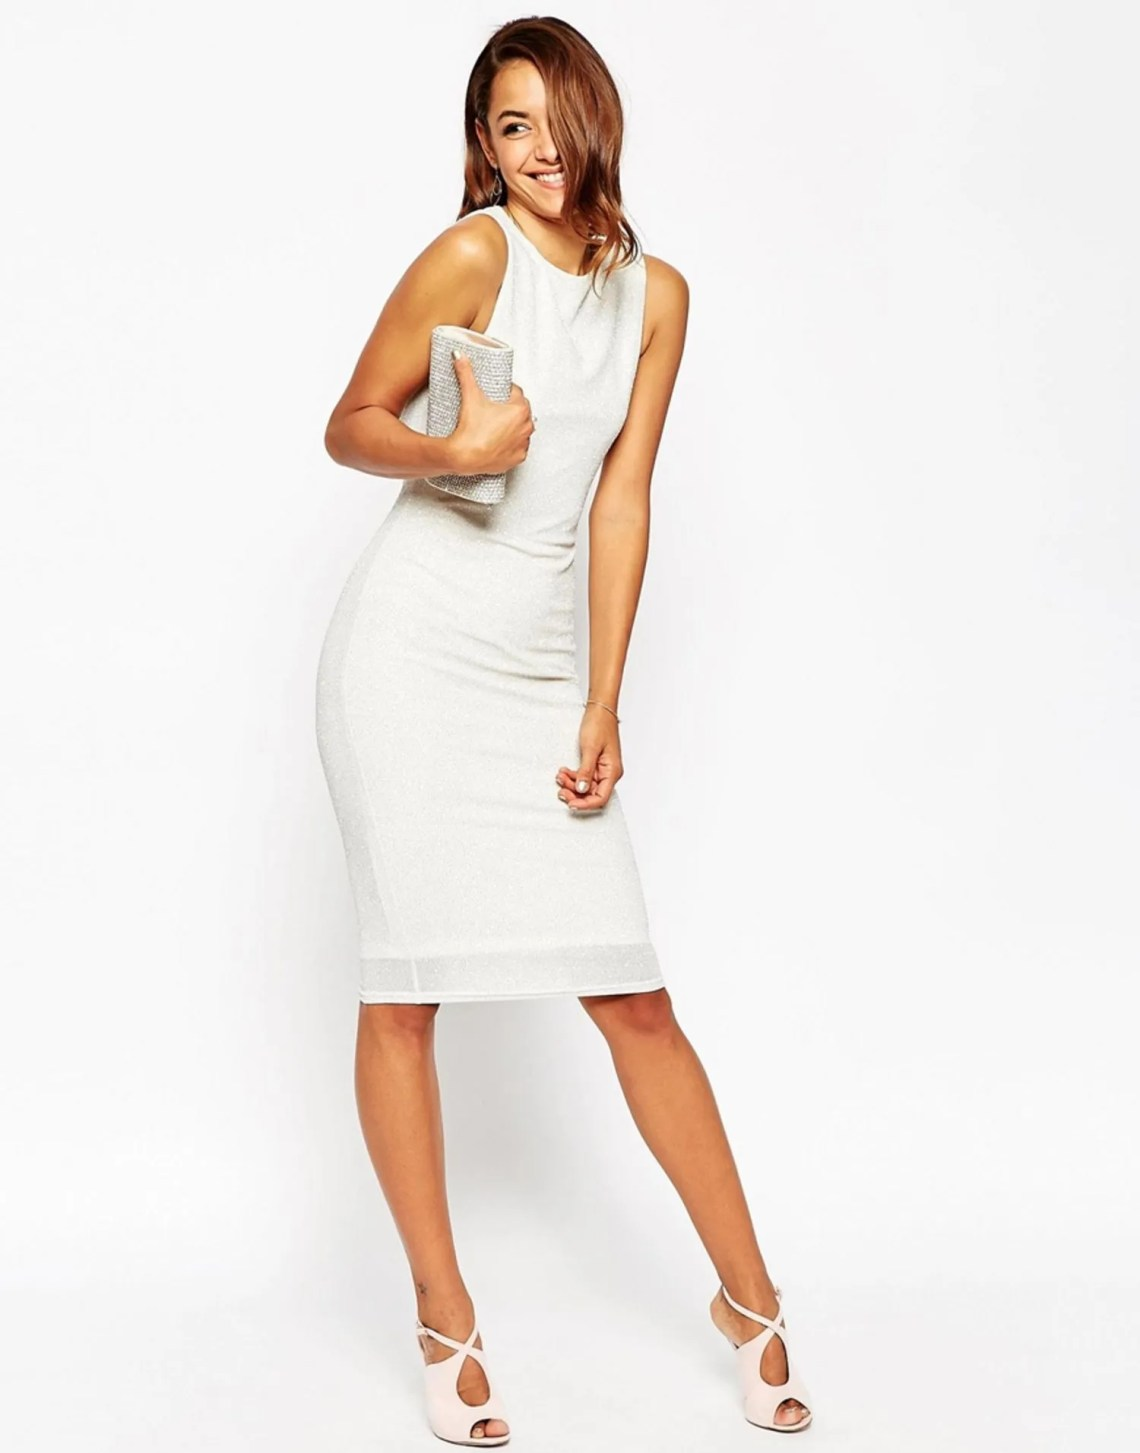 Can I Wear White to a Wedding? Can Wedding Guests Wear ...